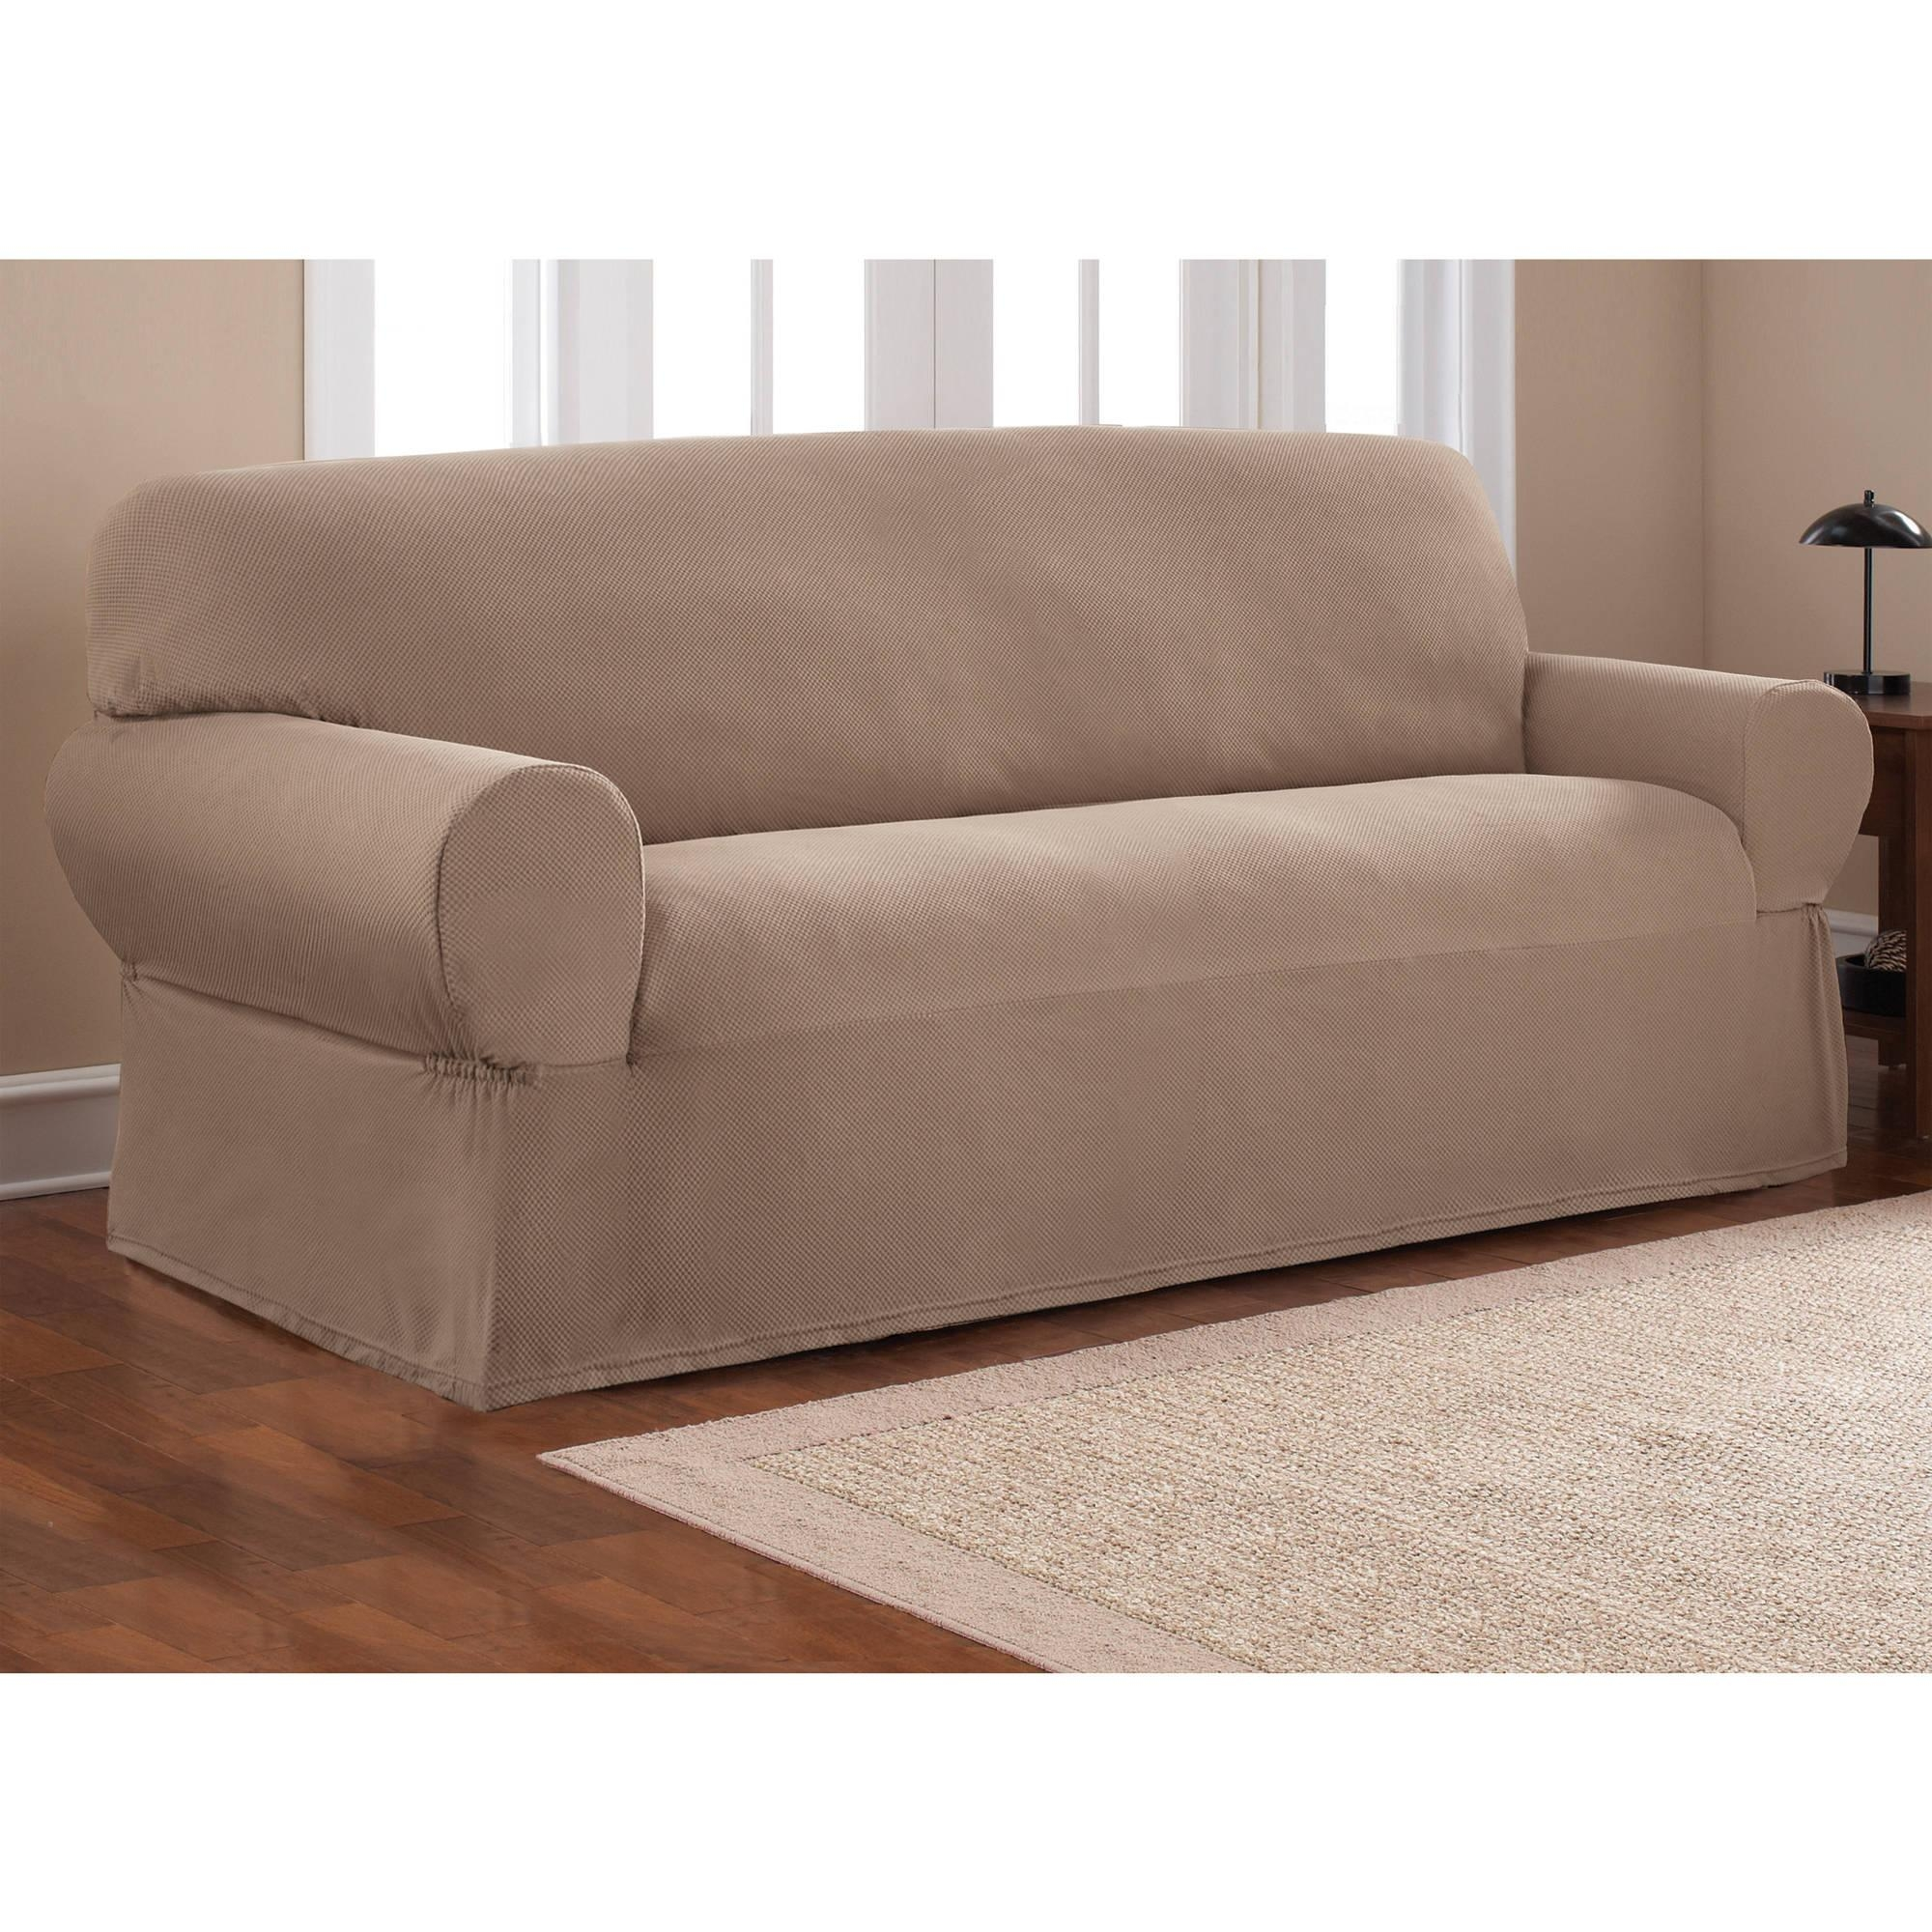 Furniture: Couch Covers At Walmart To Make Your Furniture Stylish Regarding Covers For Sofas (Image 5 of 20)